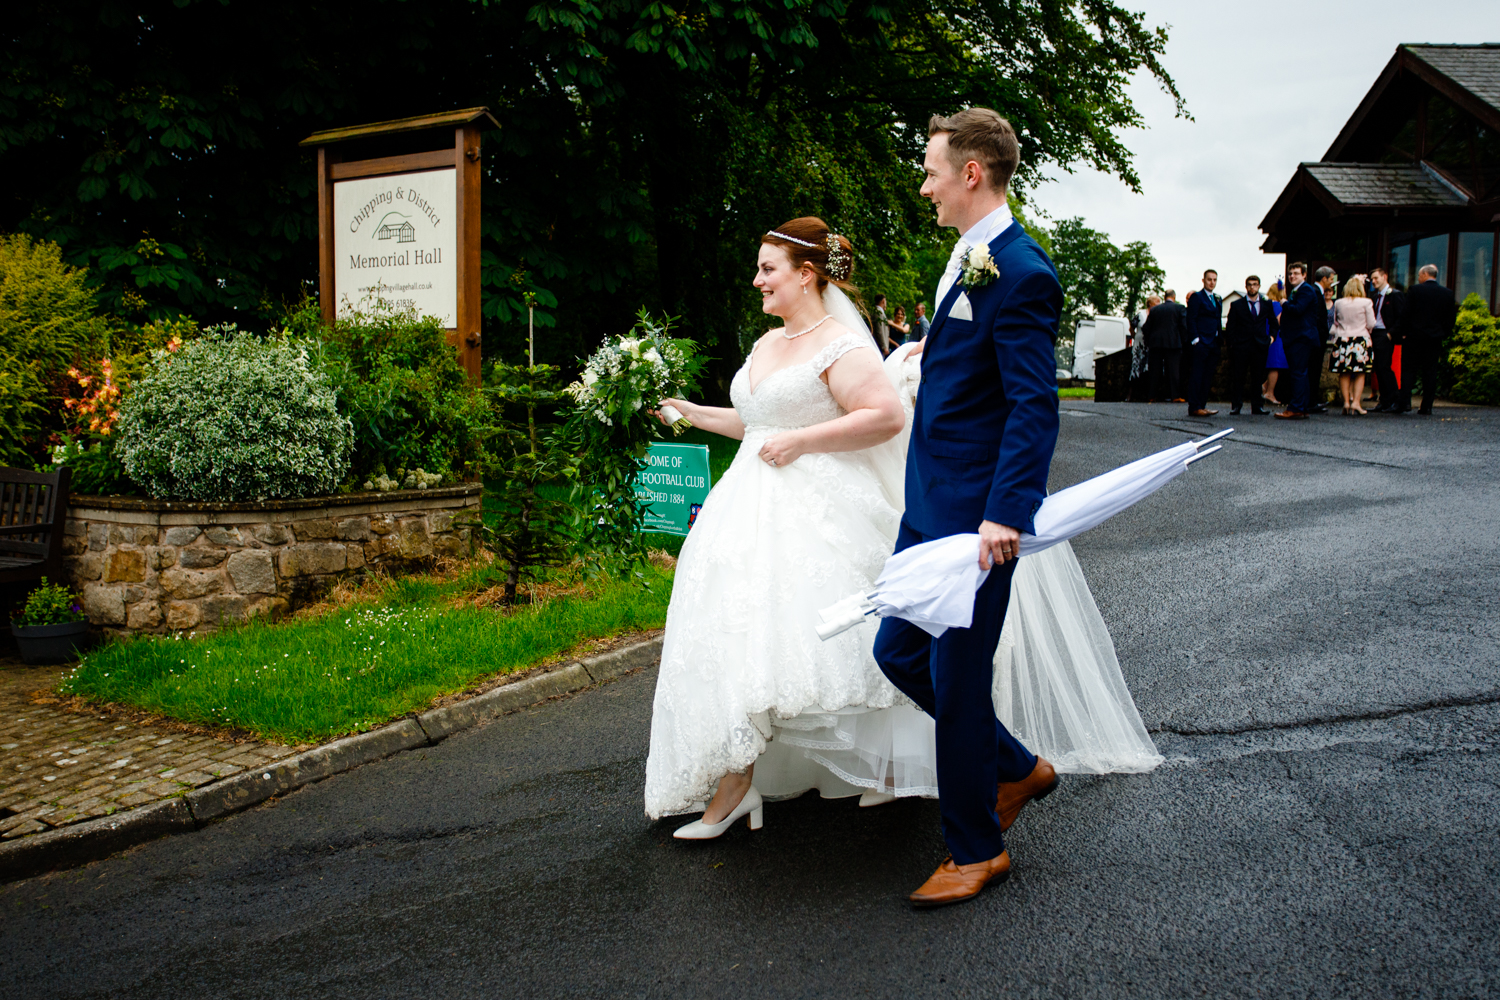 Lancashire-wedding-photographer-adele-and-alex-121.jpg